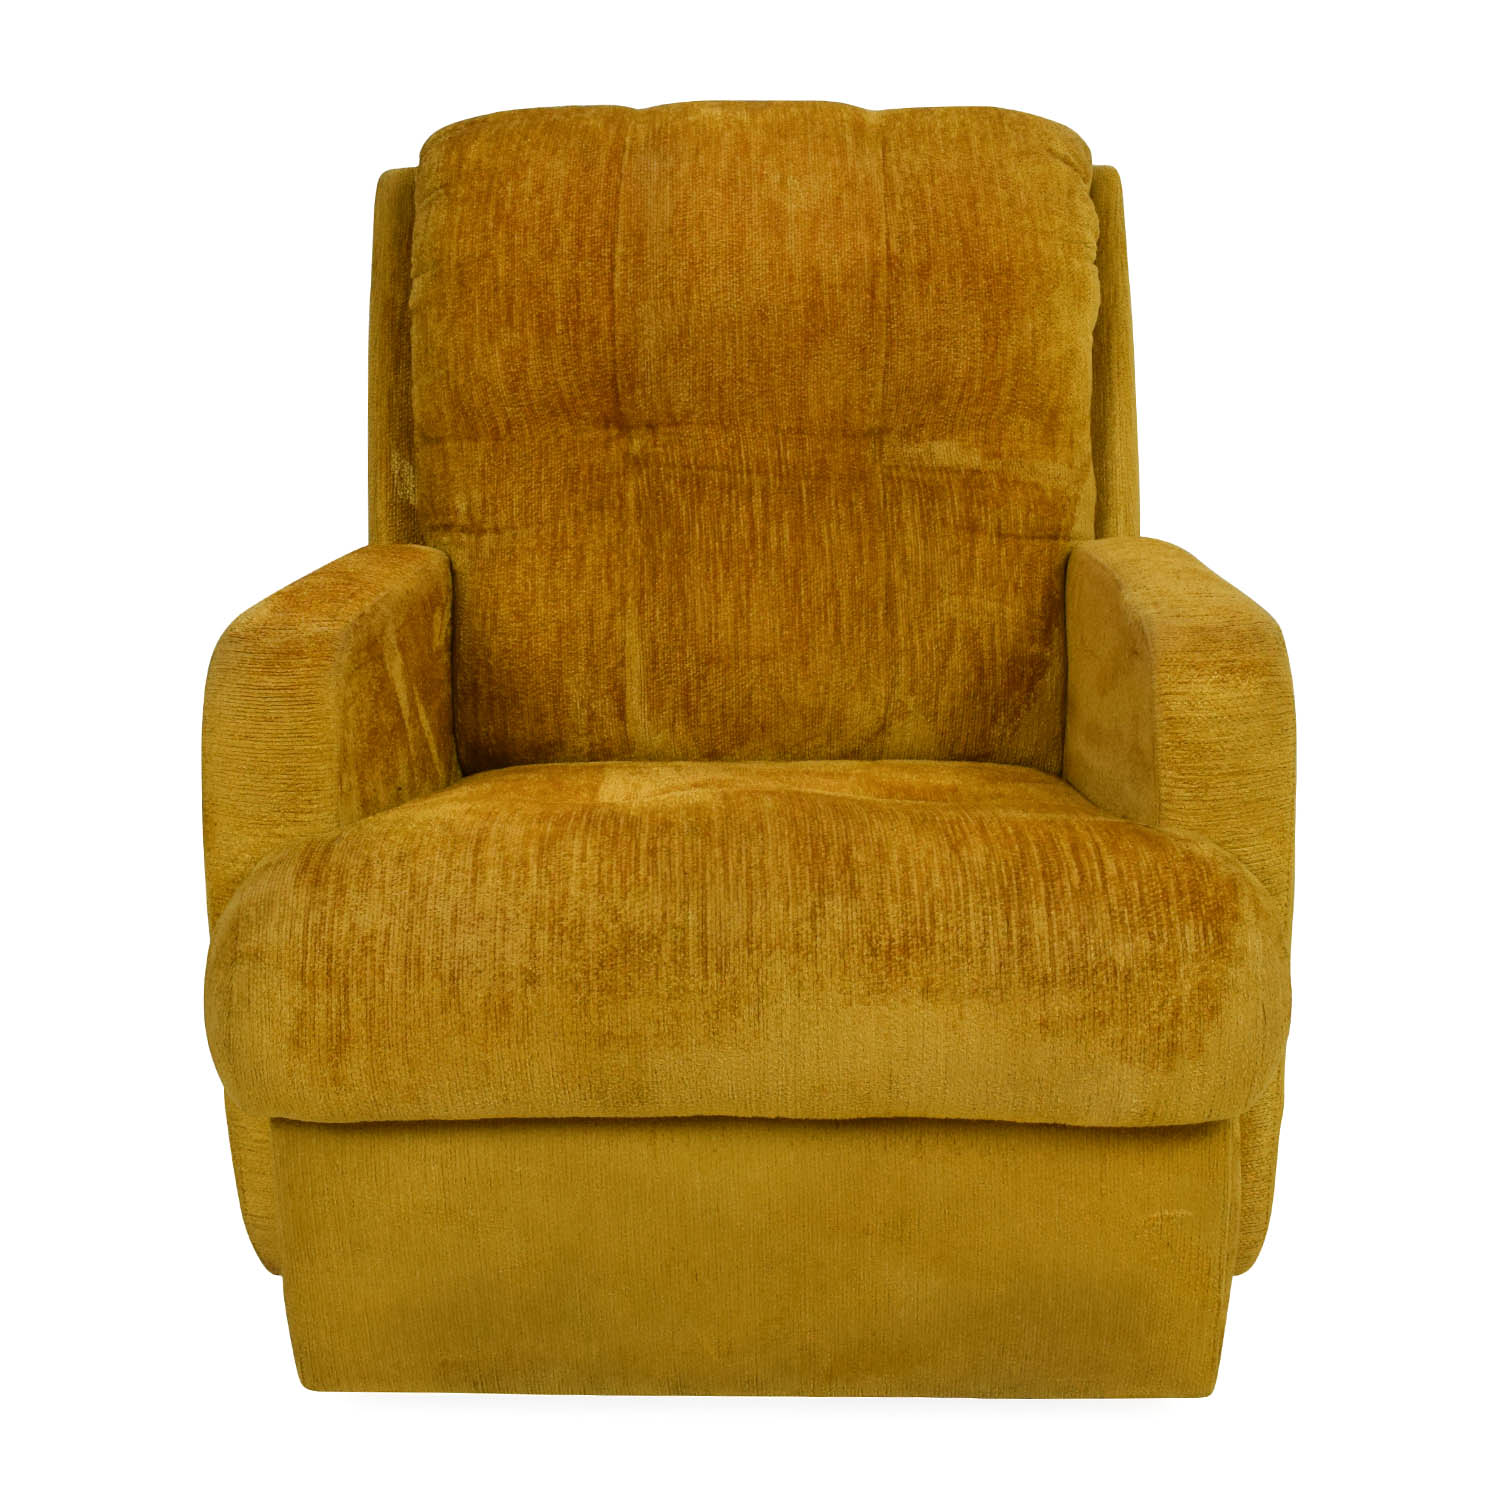 yellow chairs for sale hanging chair materials 75 off unknown brand recliner